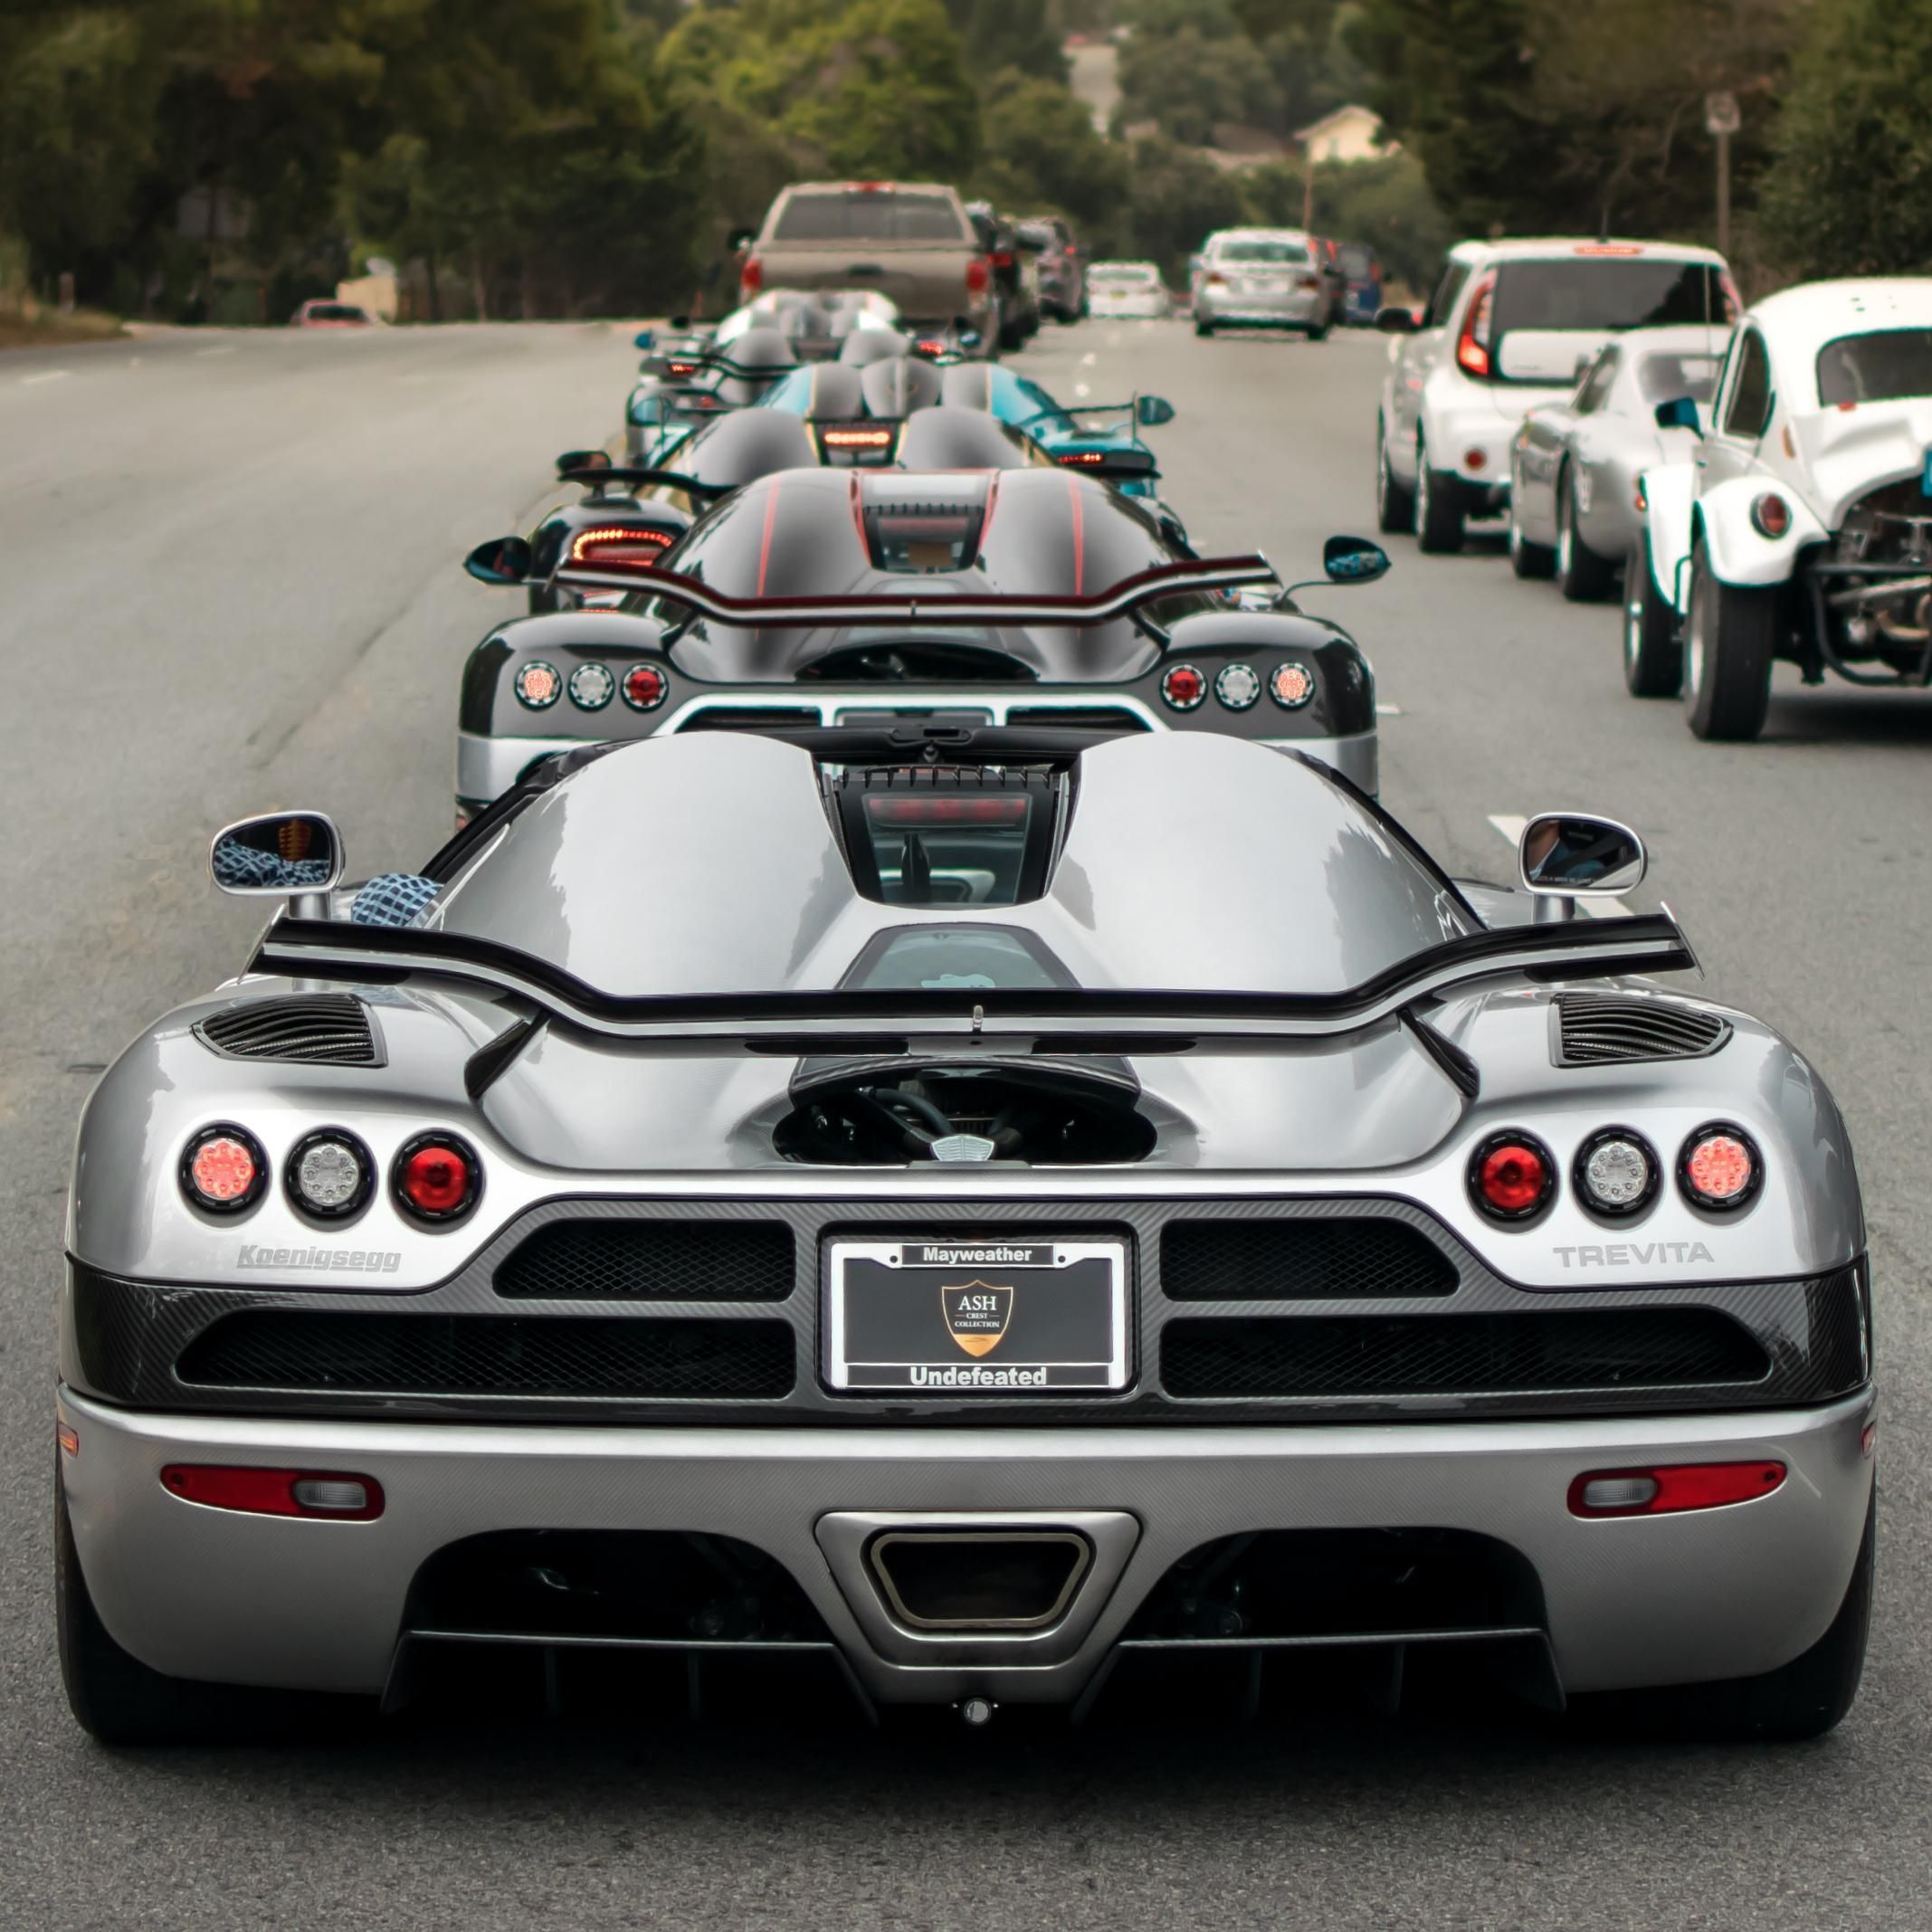 Koenigsegg Ccxr Trevita >> Car Week Egg Lineup Going Closest To Farthest Koenigsegg Ccxr